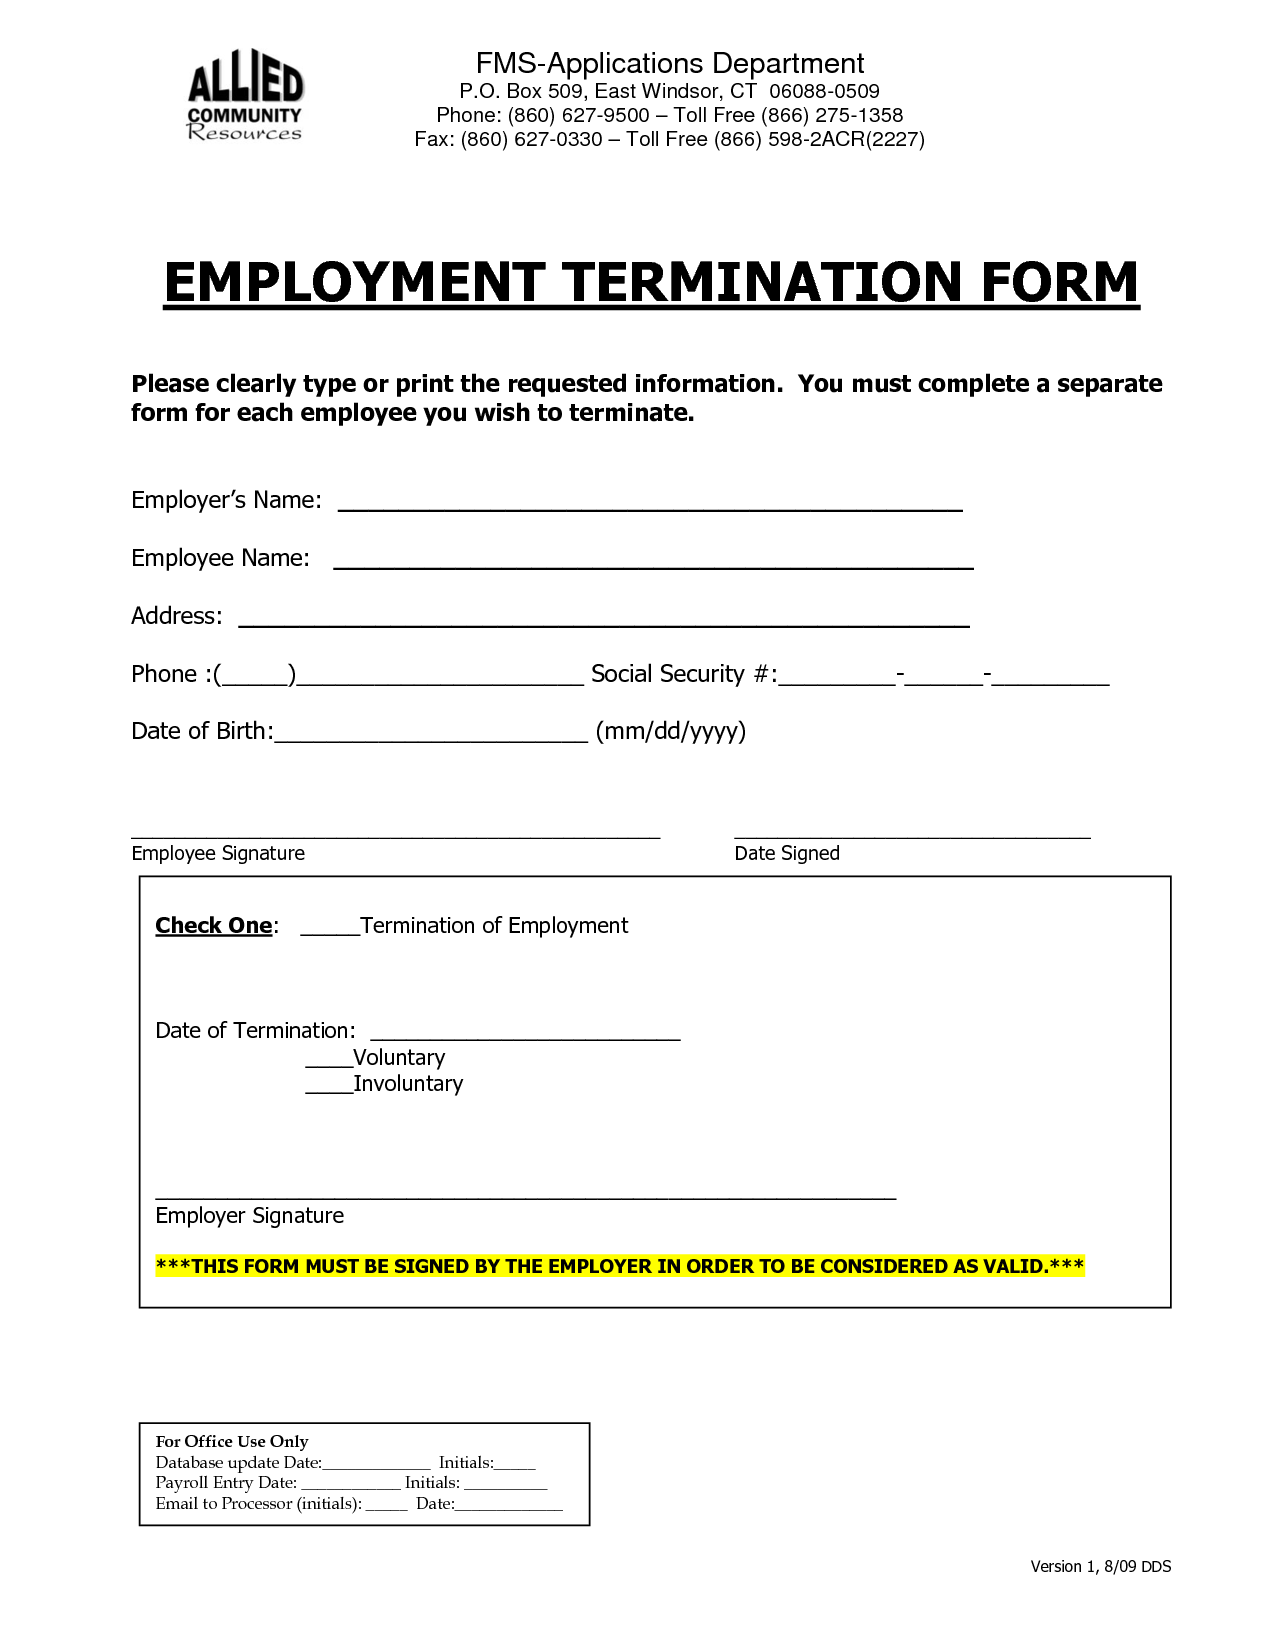 Employment Termination Form With Images